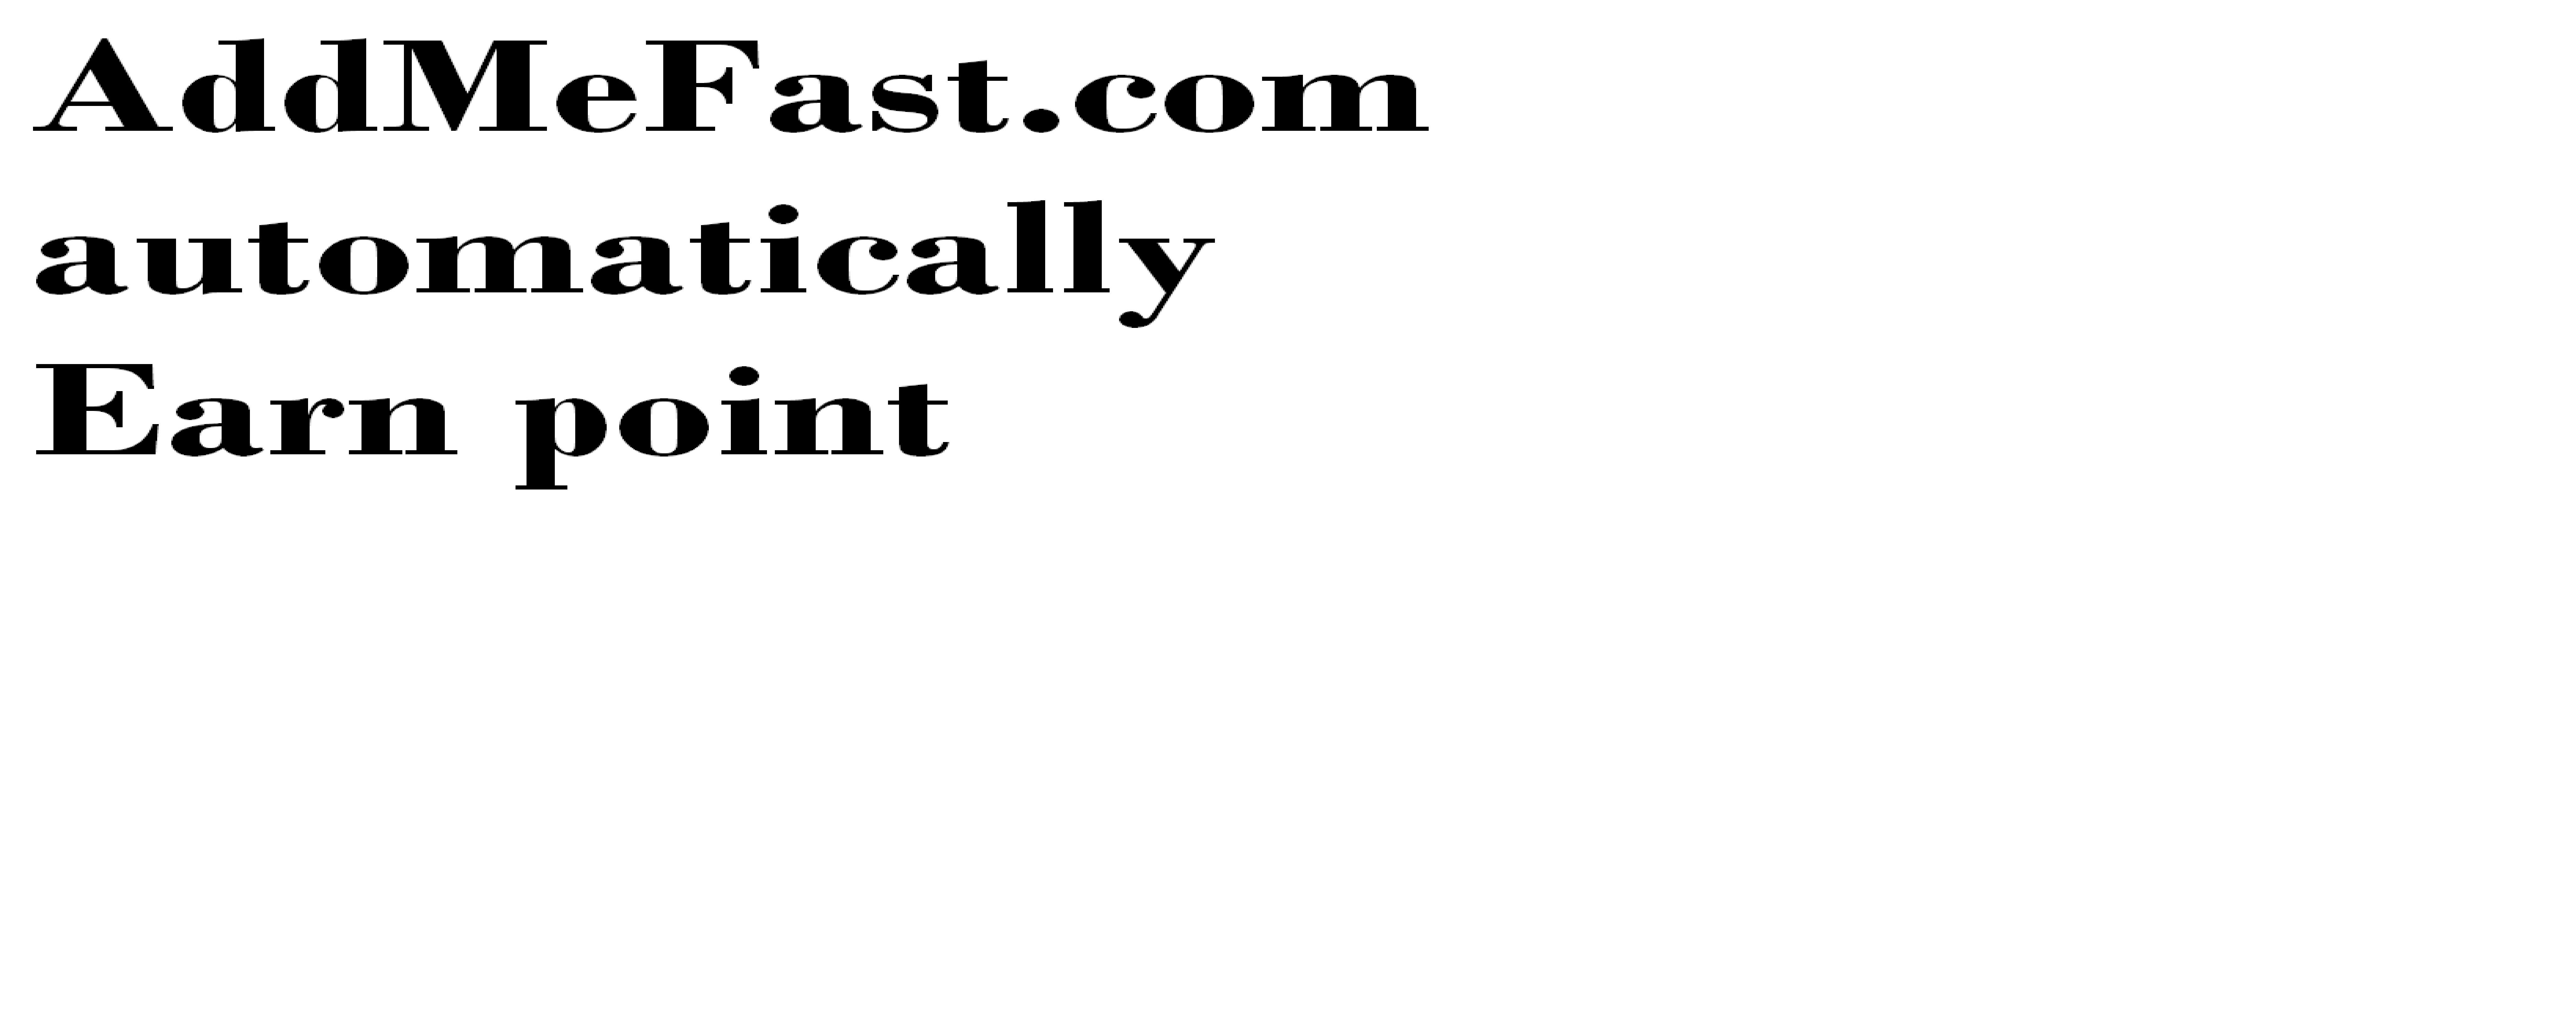 Automatically Earn points in addmefast.com software